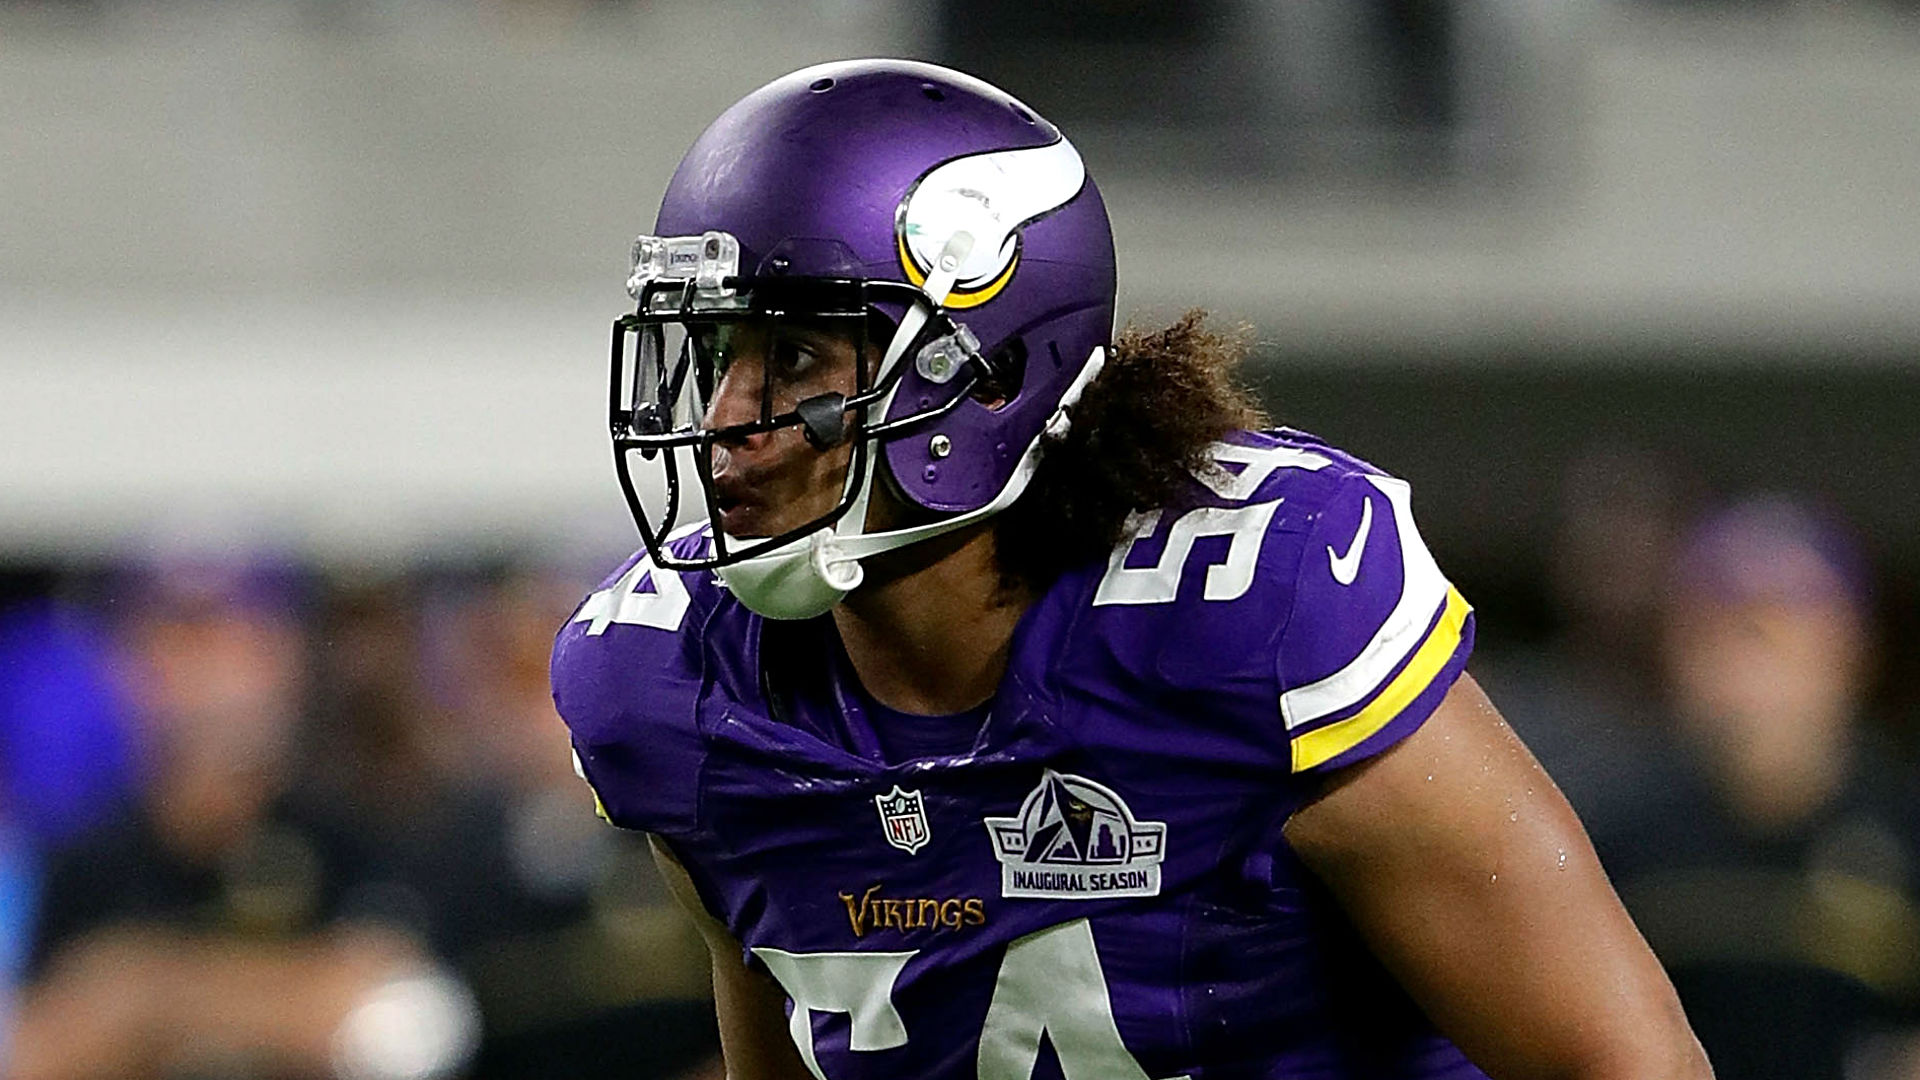 Former UCLA LB Eric Kendricks signs five-year, $50M extension with Vikings